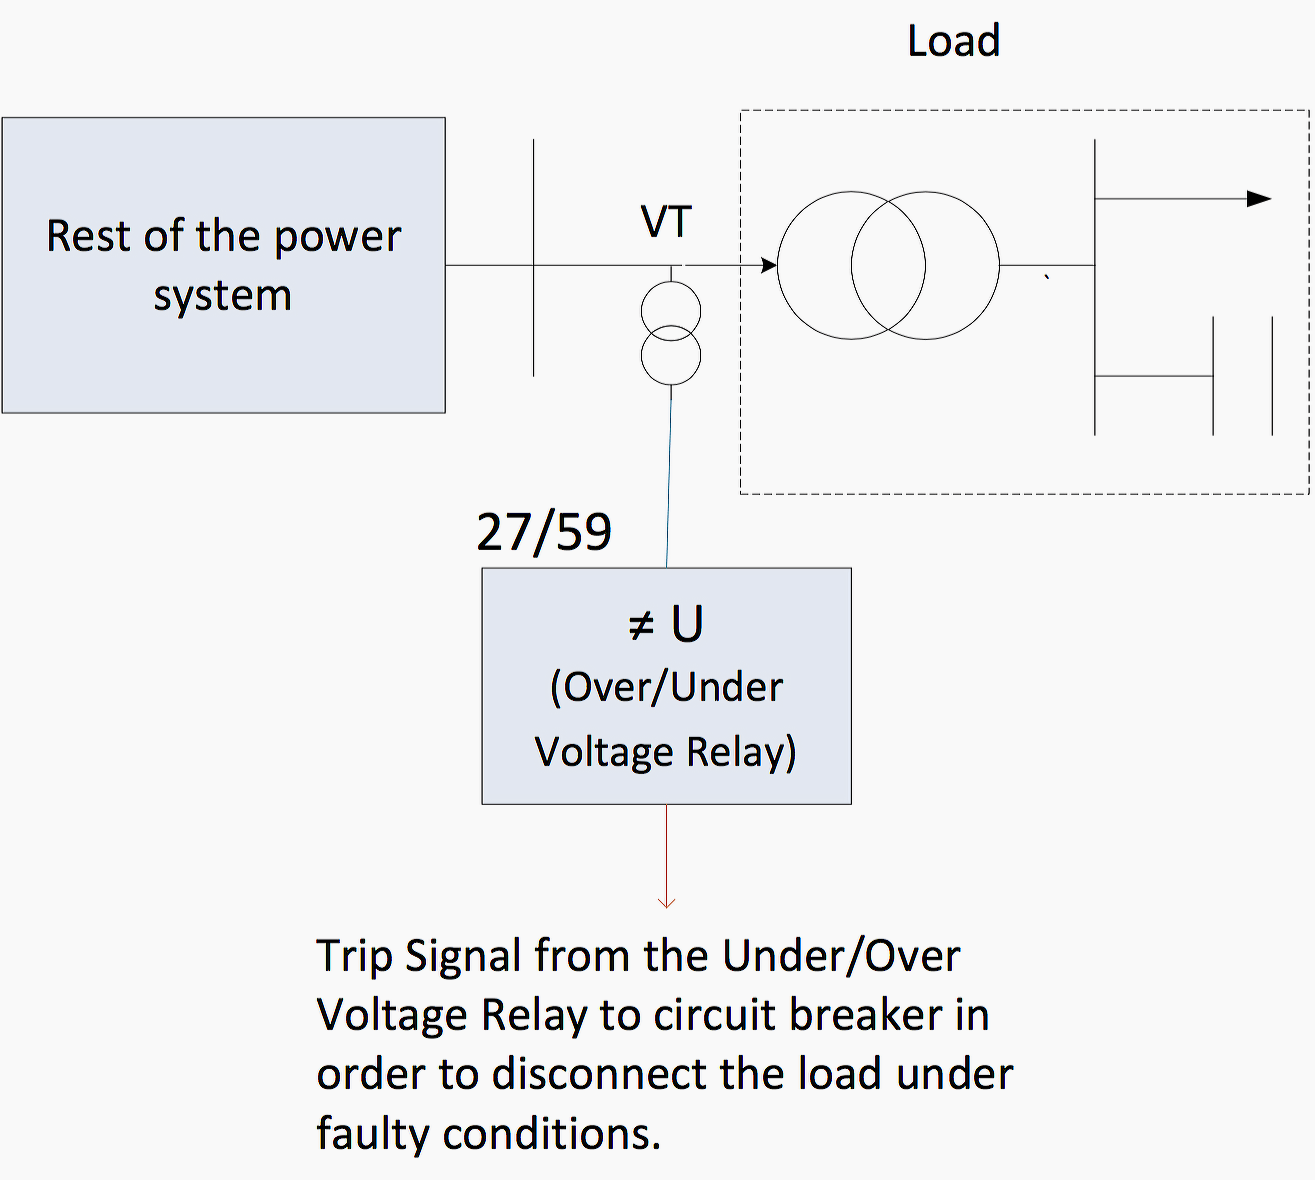 Implementation of an overunder voltage relay for load protection implementation of an overunder voltage relay for load protection swarovskicordoba Choice Image